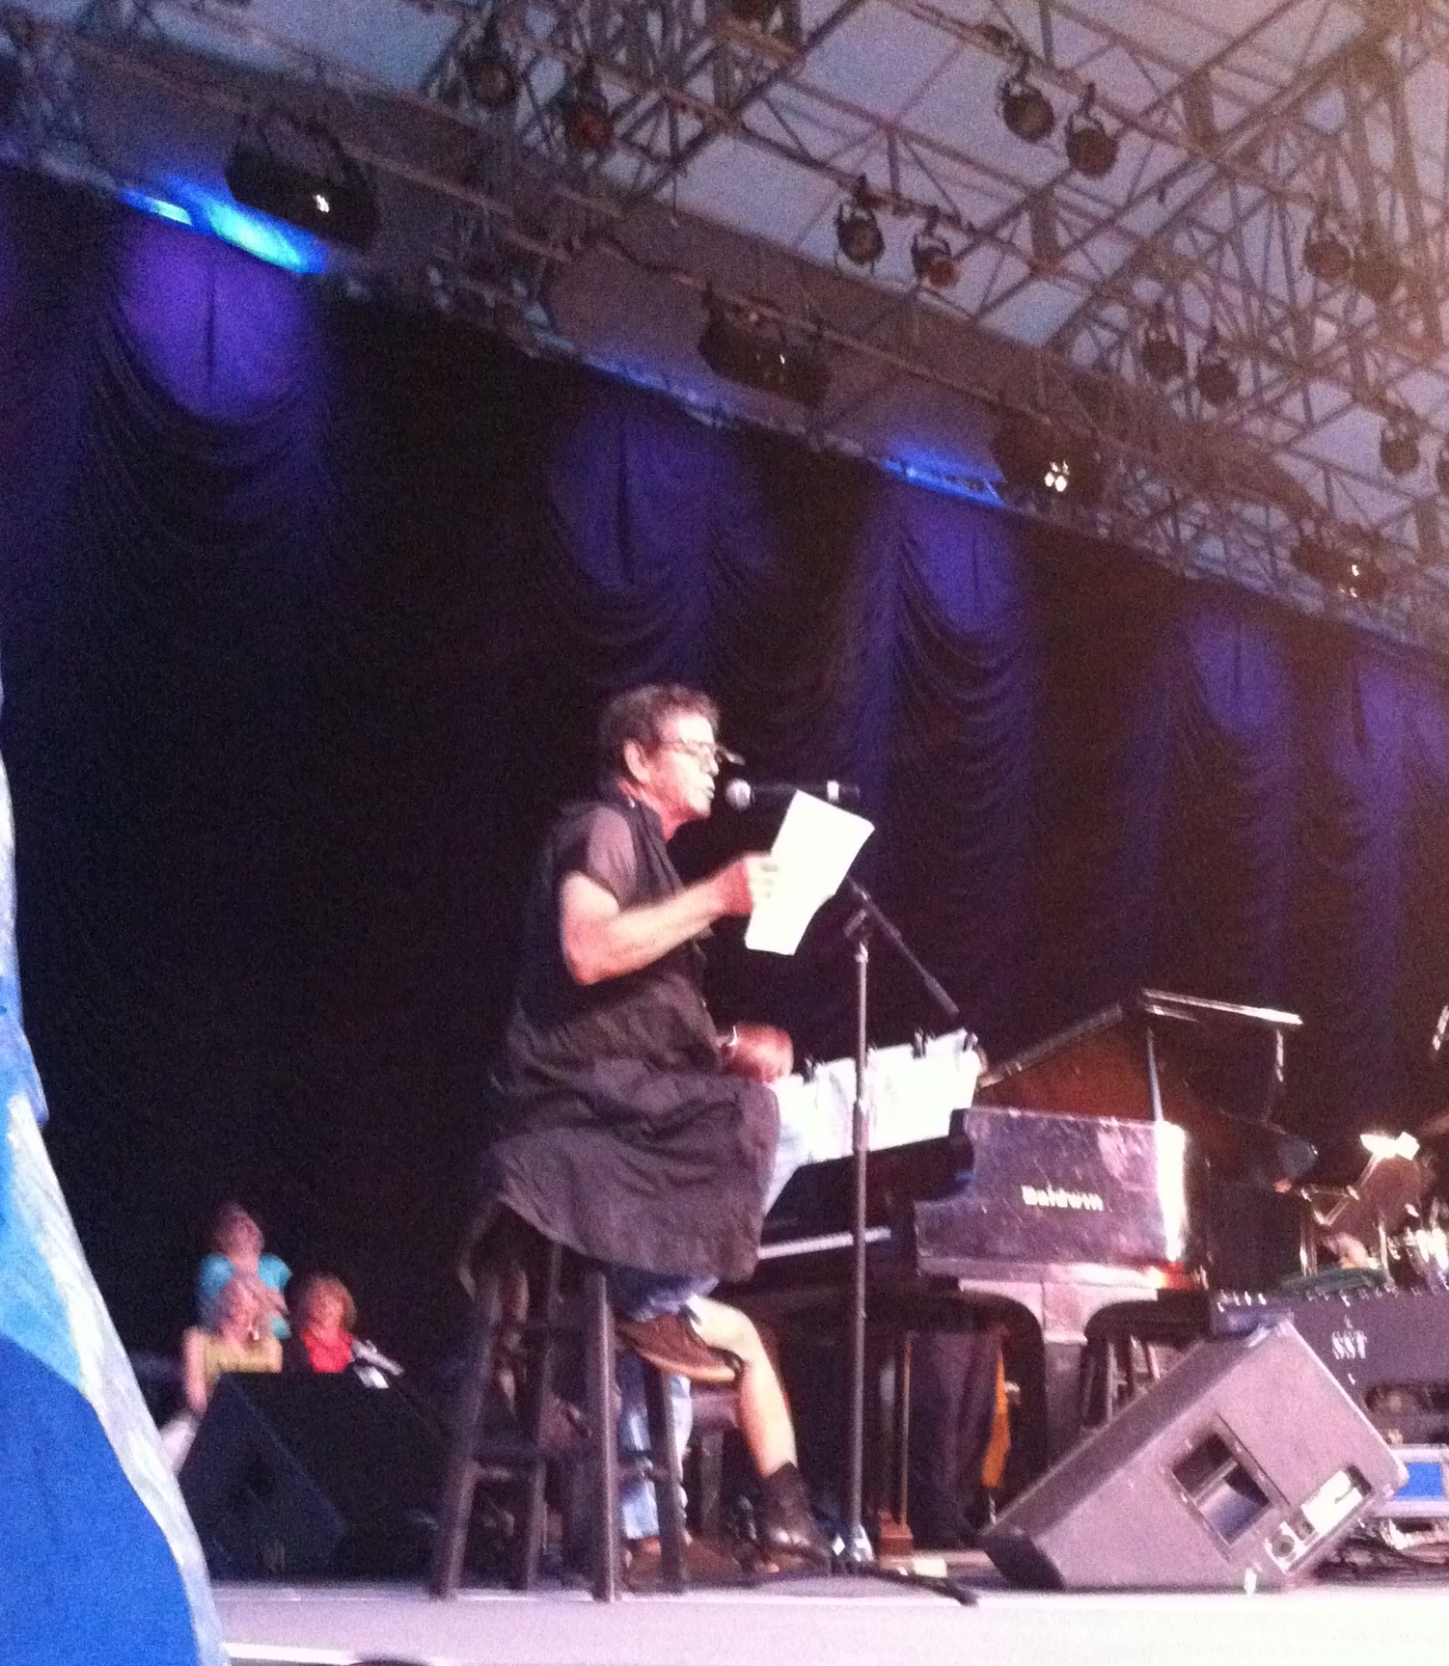 Creator and Co-Producer, Consultant for SHELebration! in Central Park. Lou Reed performing at SHELebration! in photo.